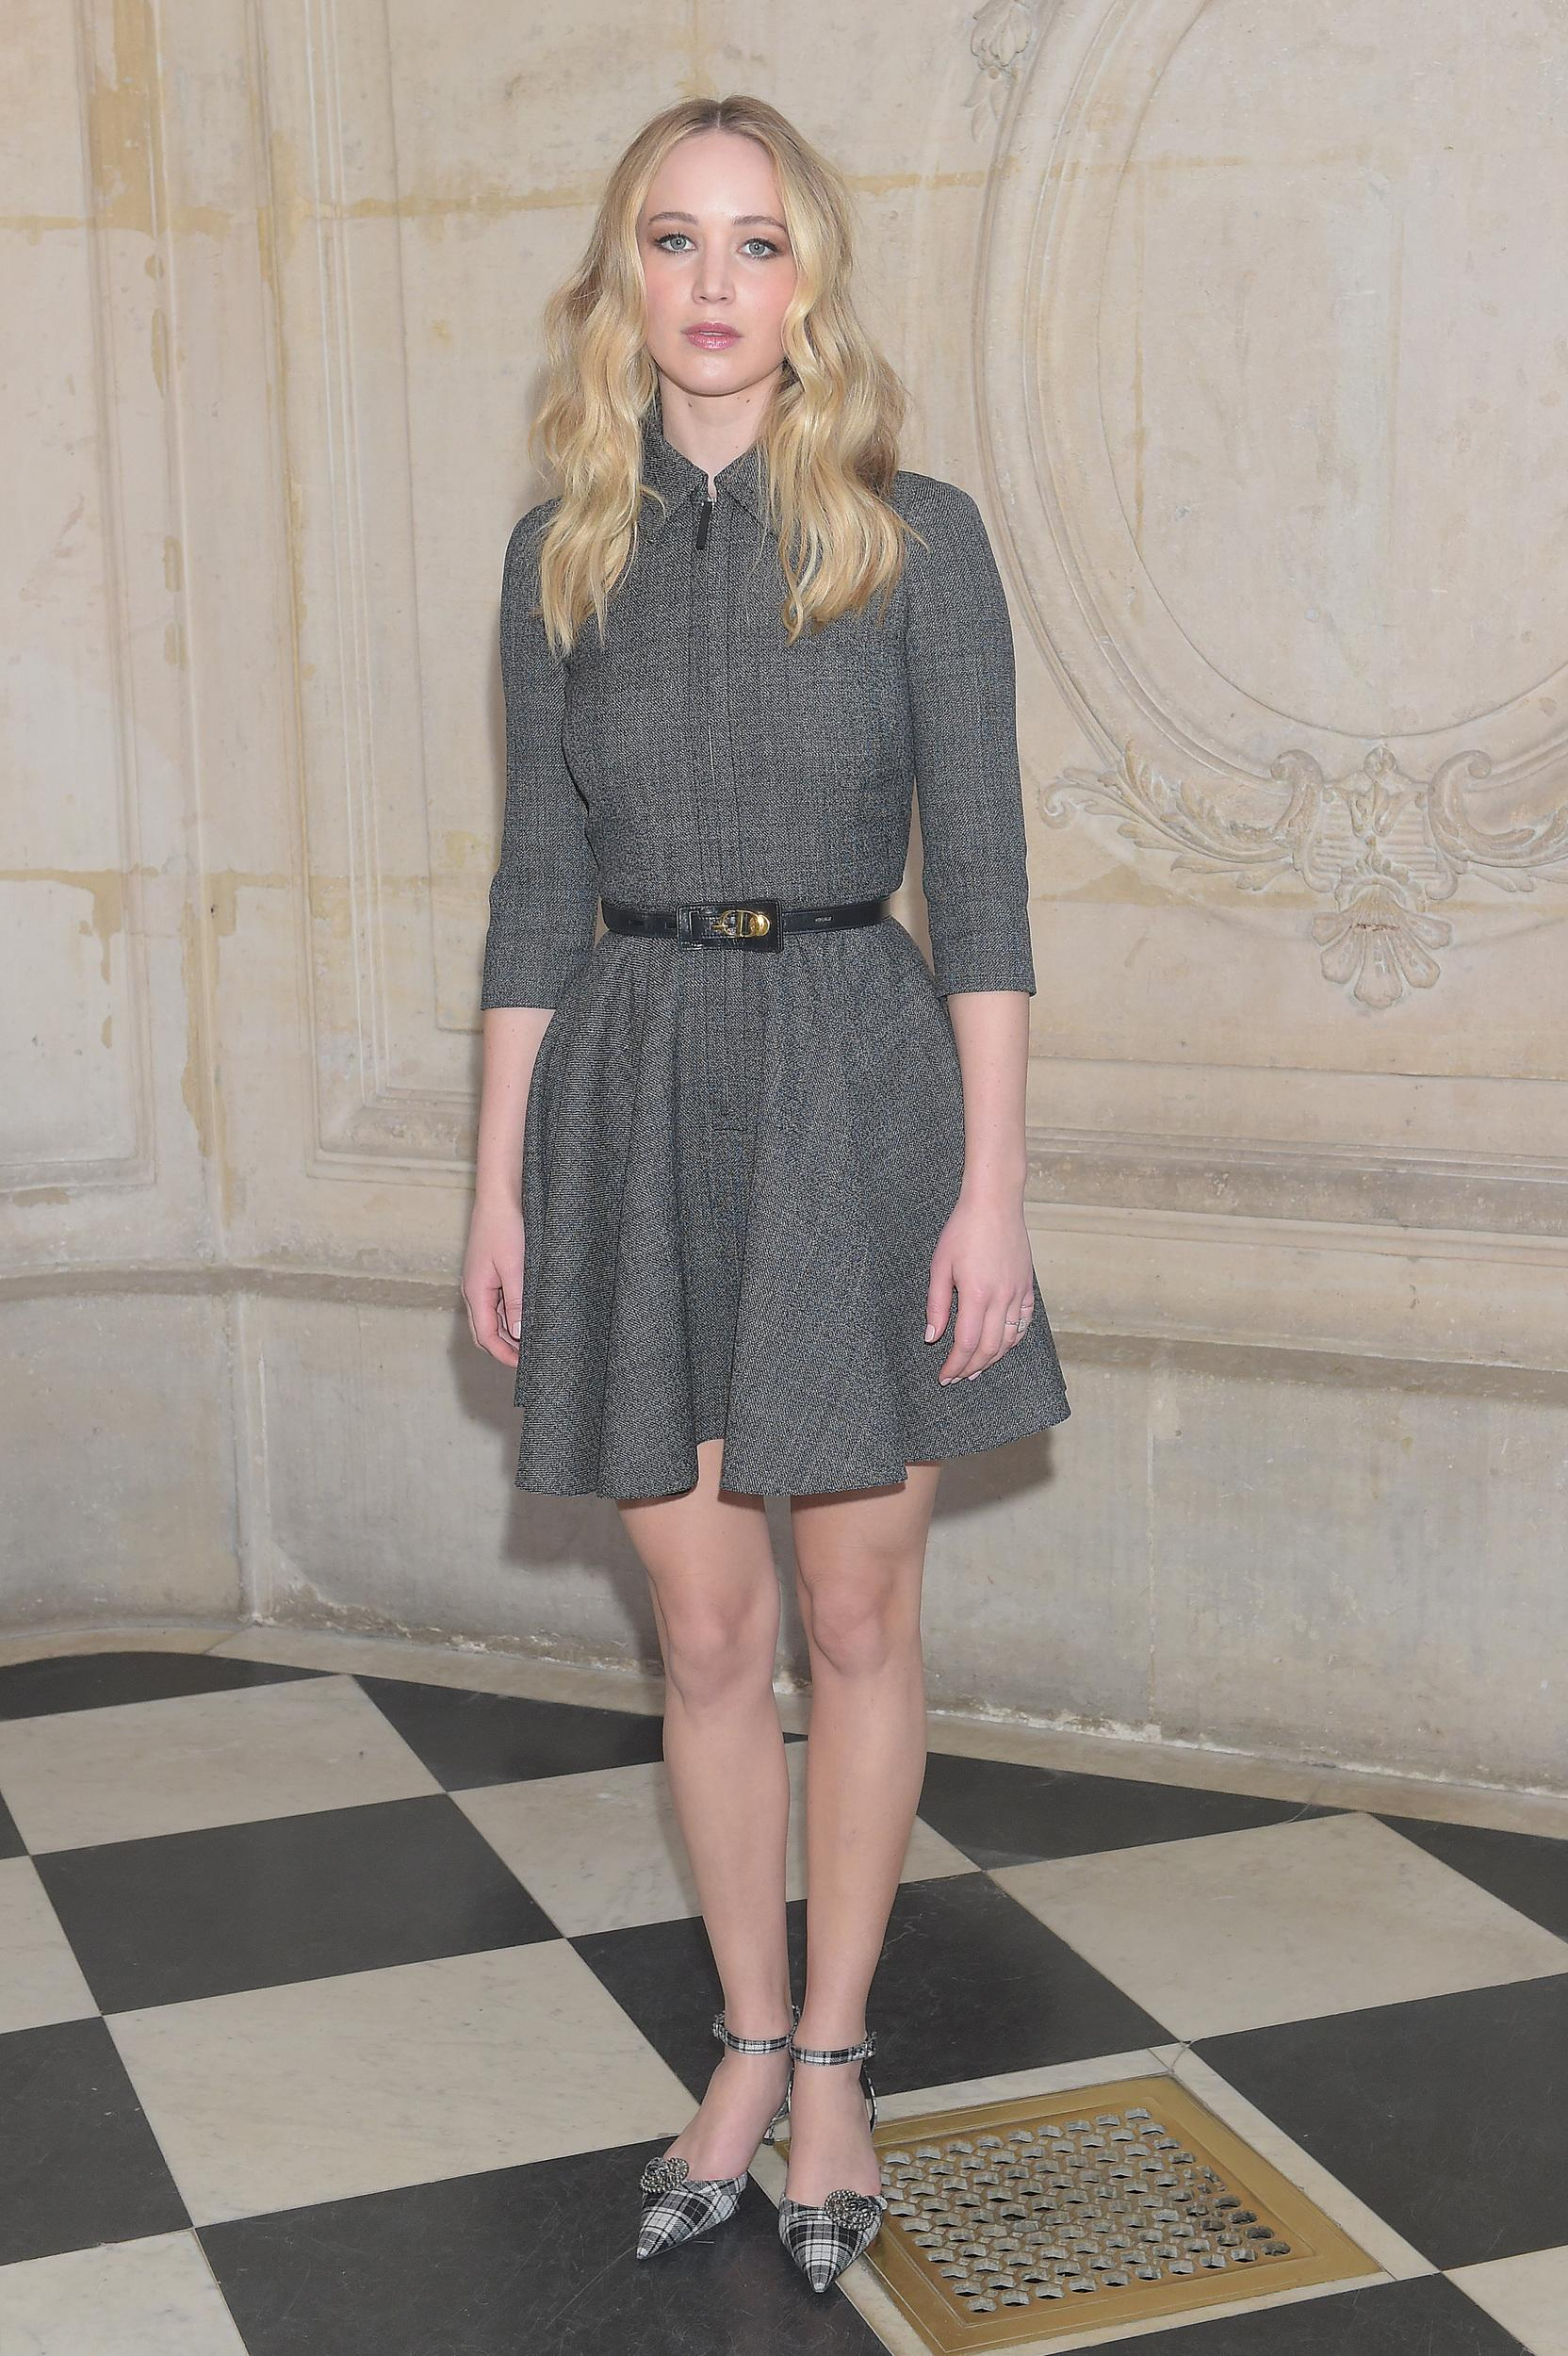 PARIS, FRANCE - FEBRUARY 26: Jennifer Lawrence attends the Christian Dior show as part of the Paris Fashion Week Womenswear Fall/Winter 2019/2020 on February 26, 2019 in Paris, France. (Photo by Dominique Charriau/WireImage)